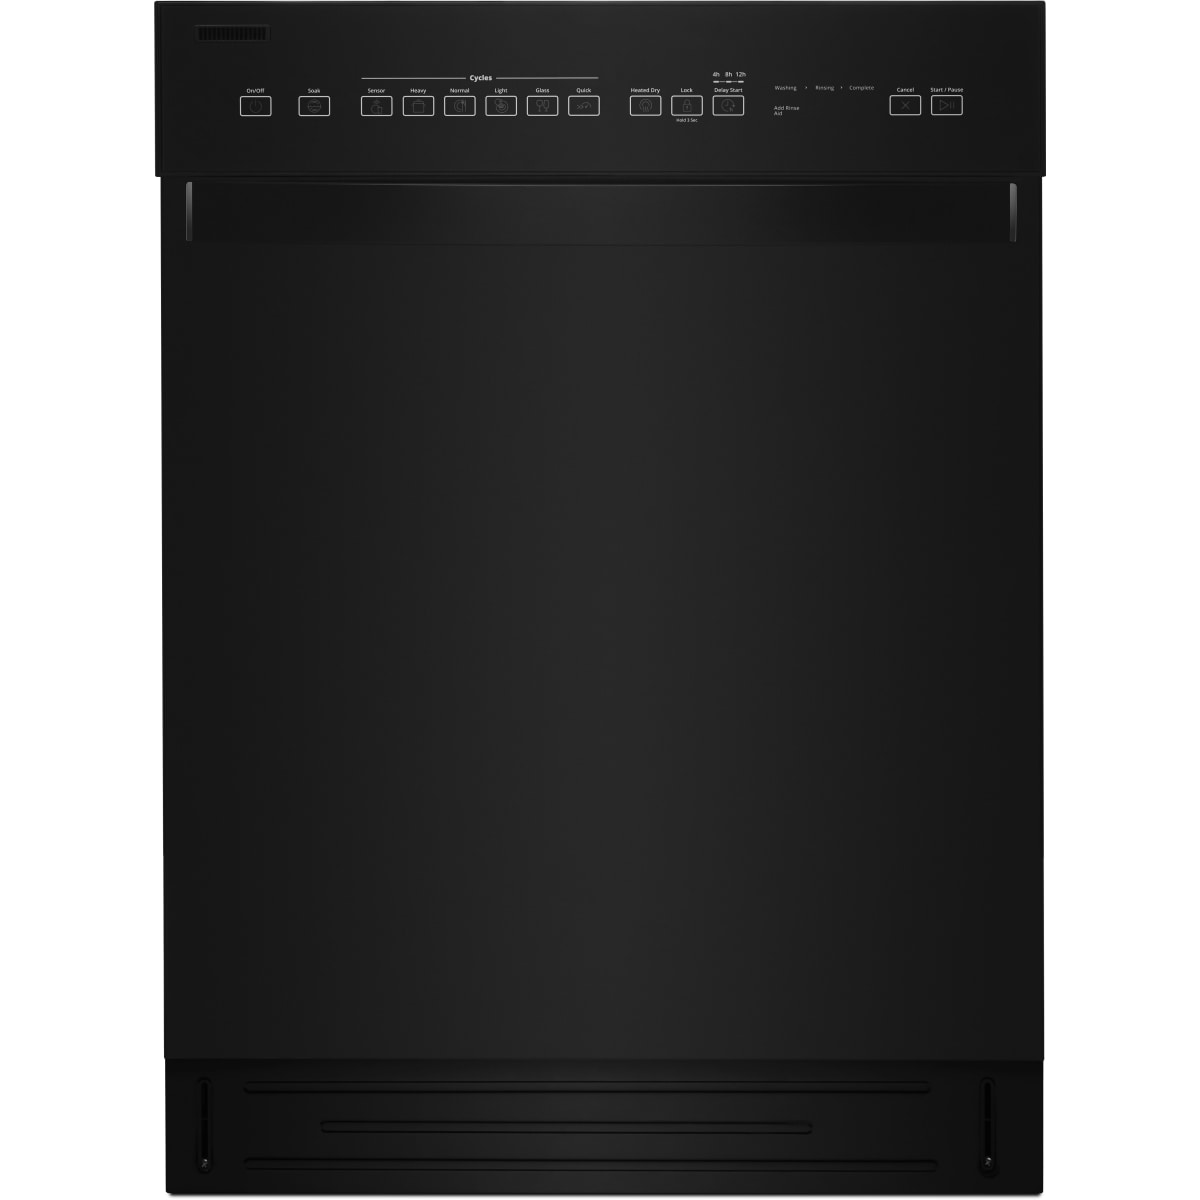 Whirlpool 24 Inch Wide 12 Place Setting Energy Star Rated Built-In Fully Integrated Dishwasher